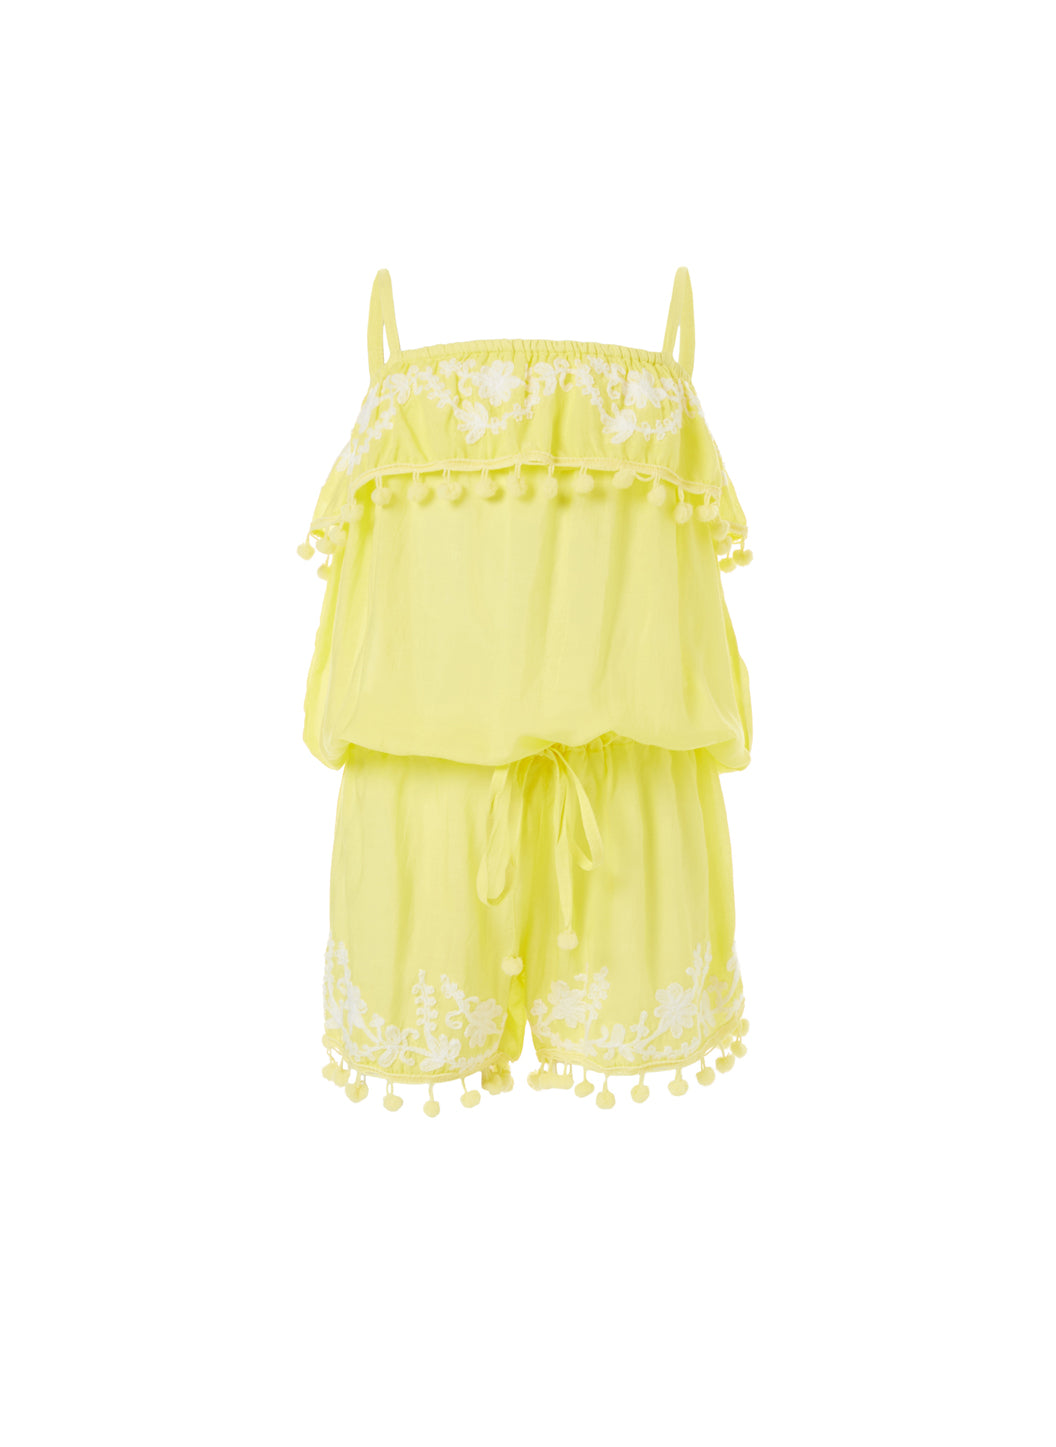 Baby Eisha Yellow/White Playsuit